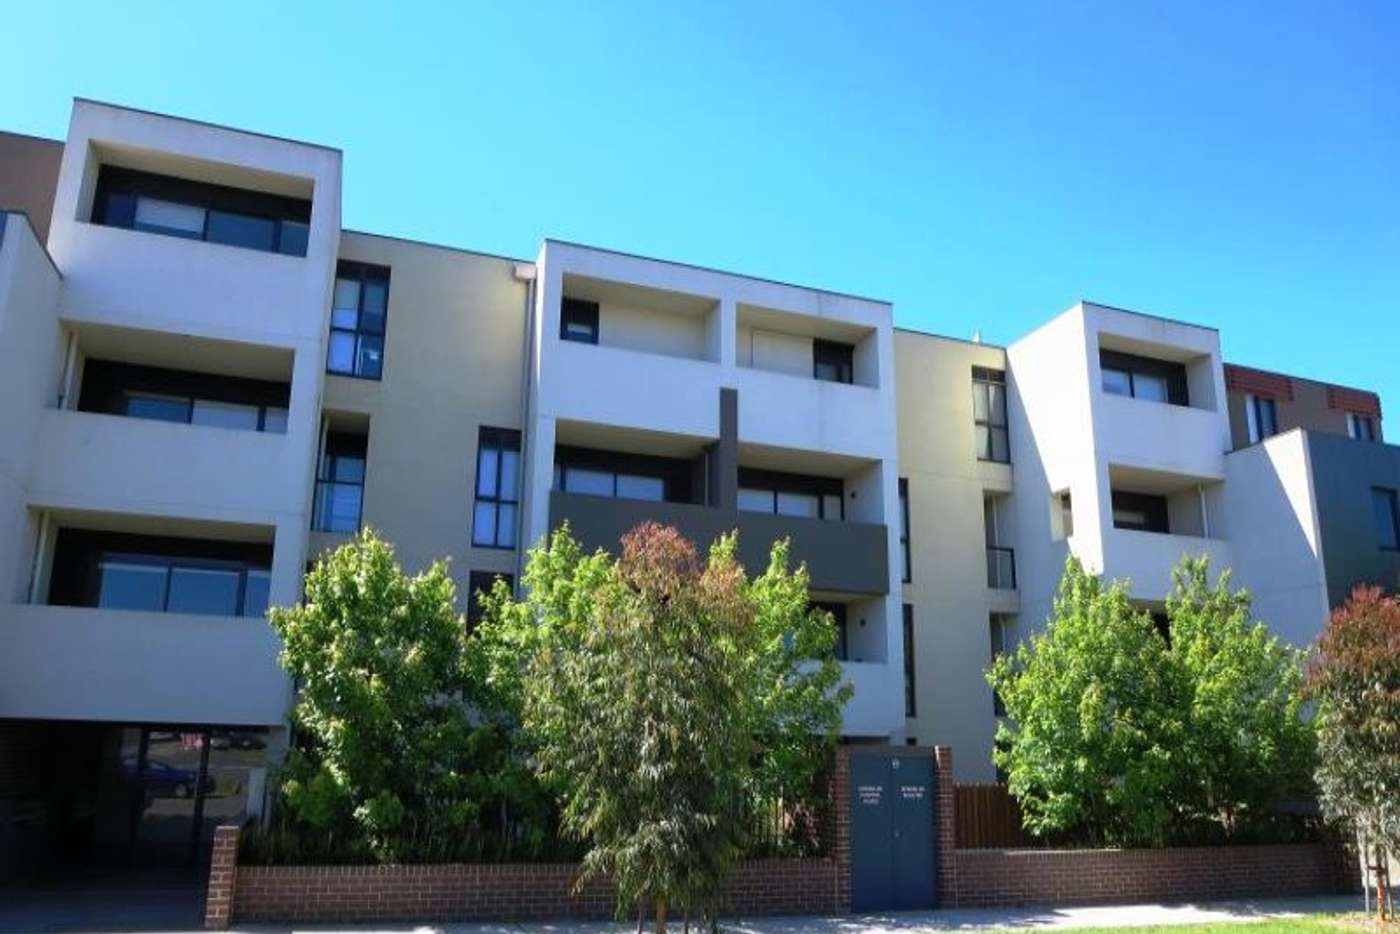 Main view of Homely apartment listing, 103/435-439 Whitehorse Road, Mitcham VIC 3132